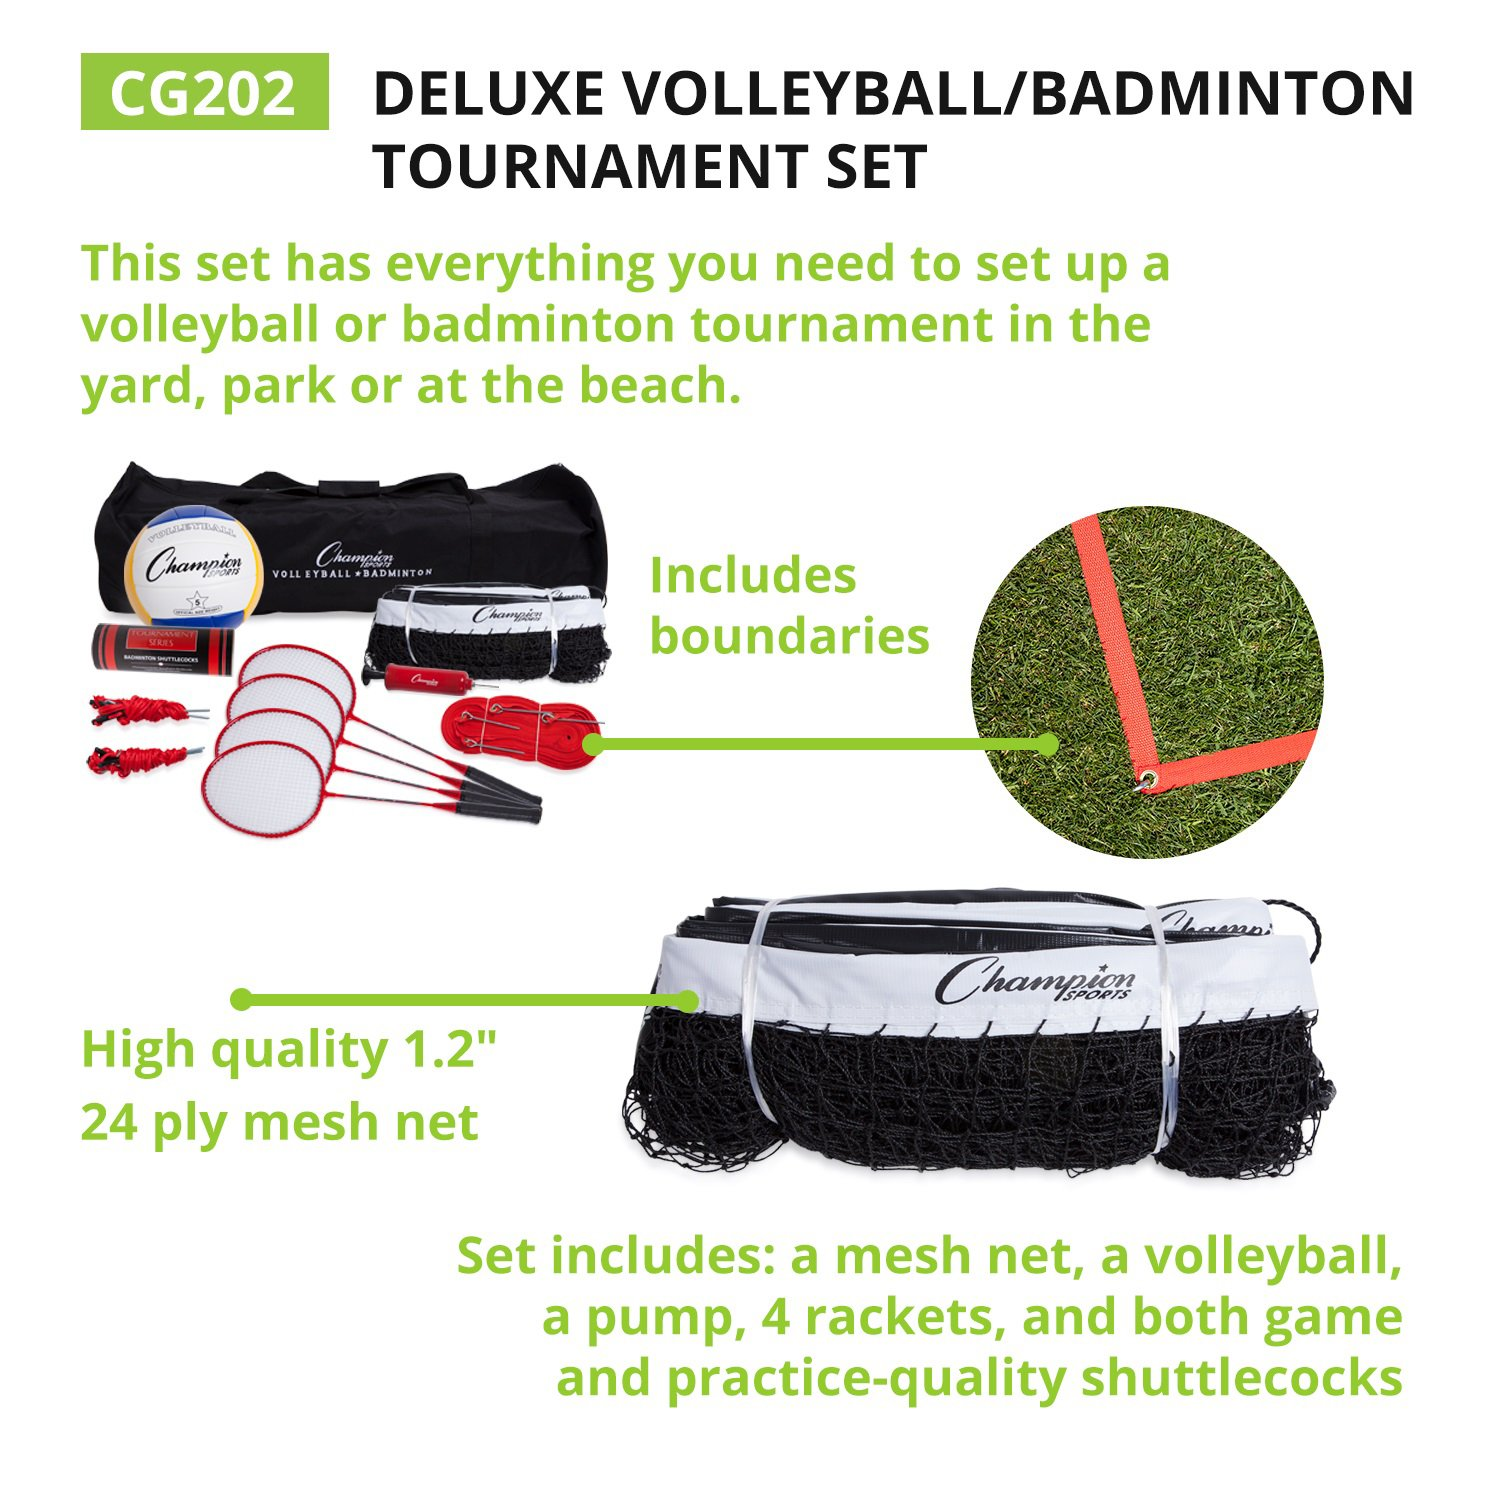 Champion Sports Volleyball & Badminton Set: Net, Poles, Ball, Rackets & Shuttlecocks - Portable Equipment for Outdoor, Lawn, Beach & Tournament Games by Champion Sports (Image #5)